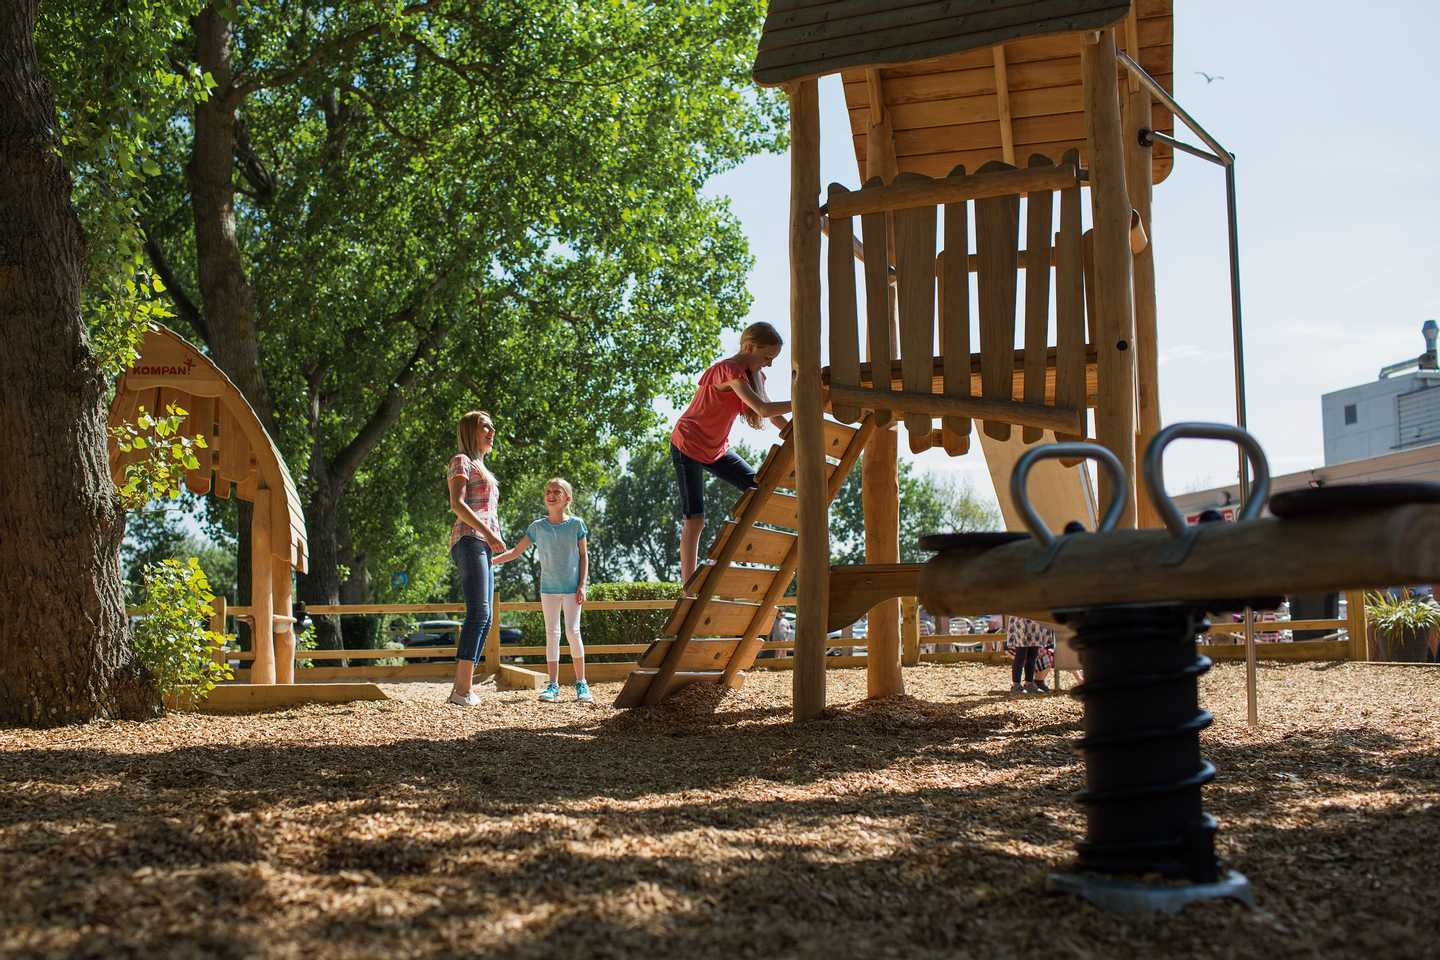 Children climbing in the outdoor play area